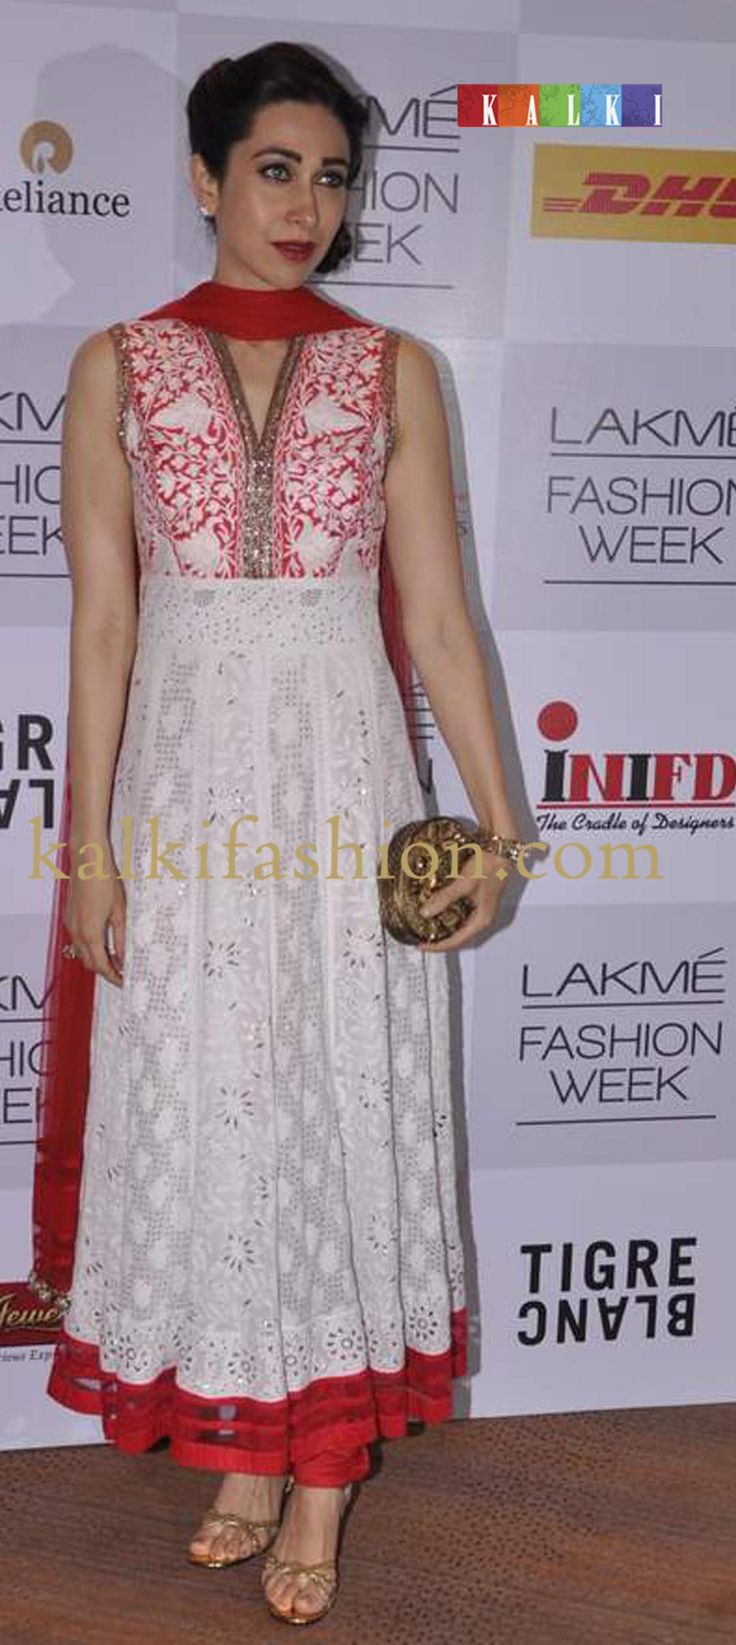 Manish malhotra anarkali manish malhotra anarkali hd wallpapers car - Karishma Kapoor In Manish Malhotra White Loong Anarkali Dress At Lakme Fashion Week Winter Festival 2013 Mm 86